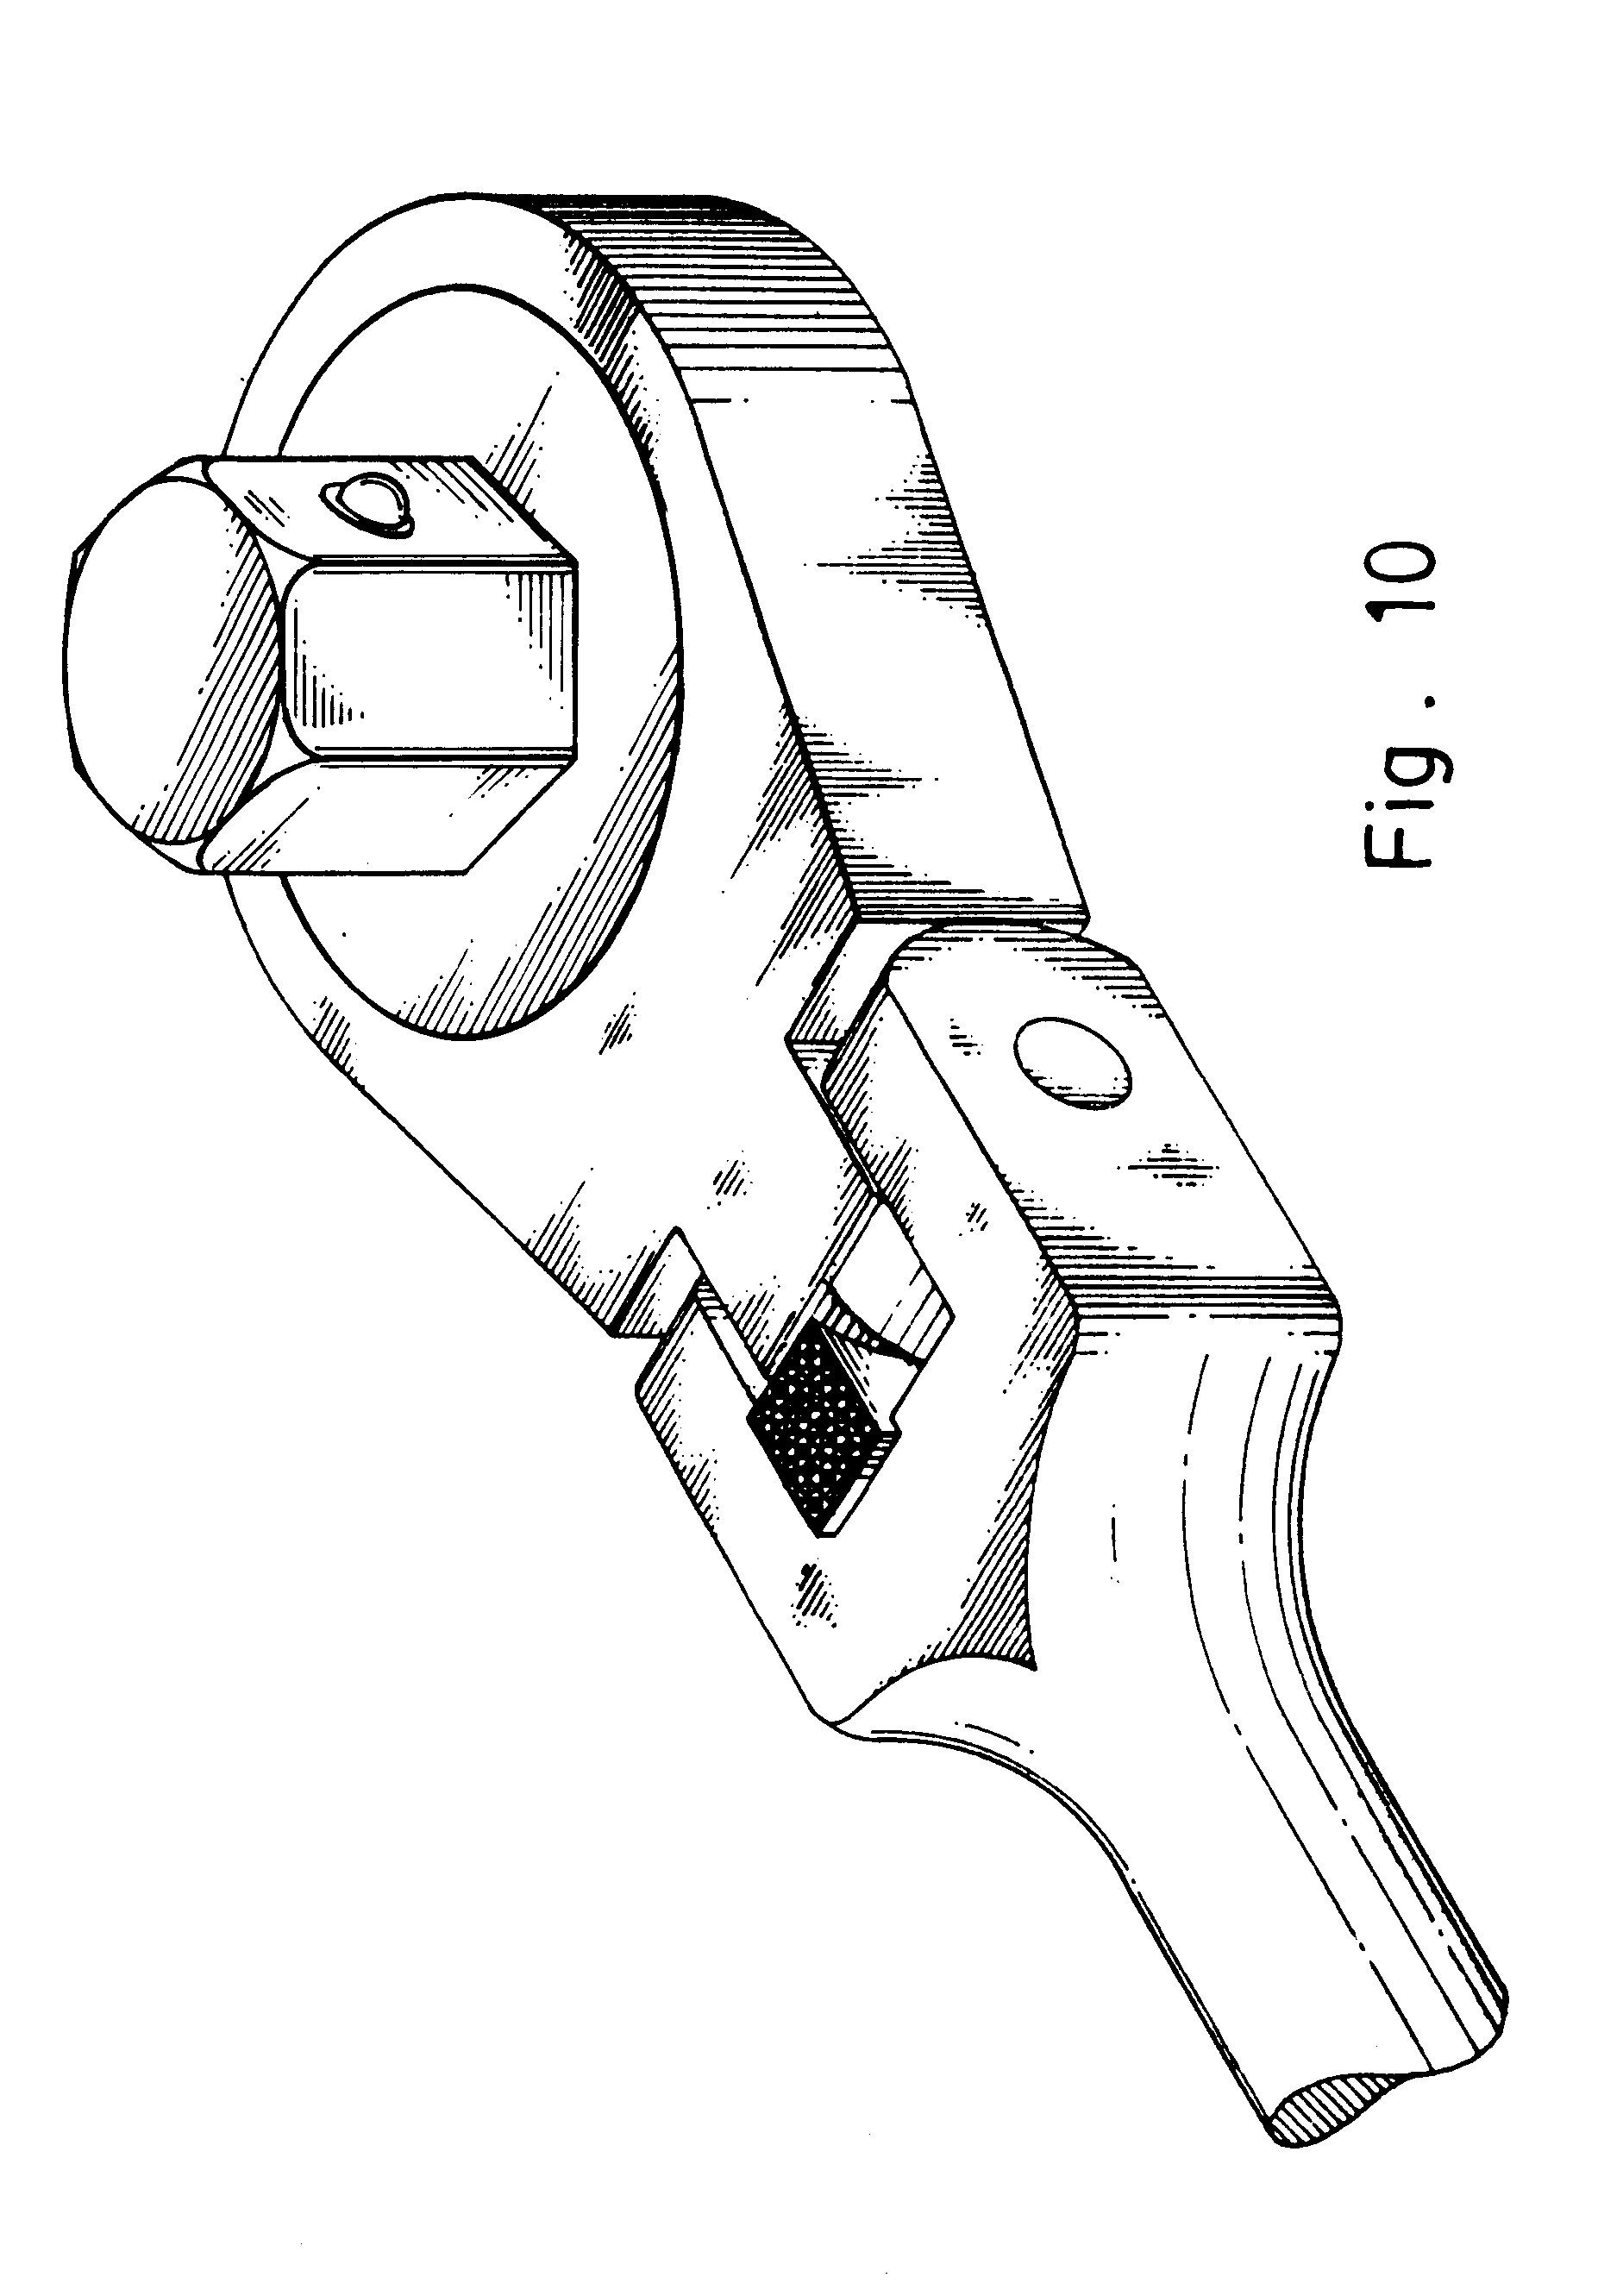 Adjustable Wrench: Adjustable Wrench Drawing